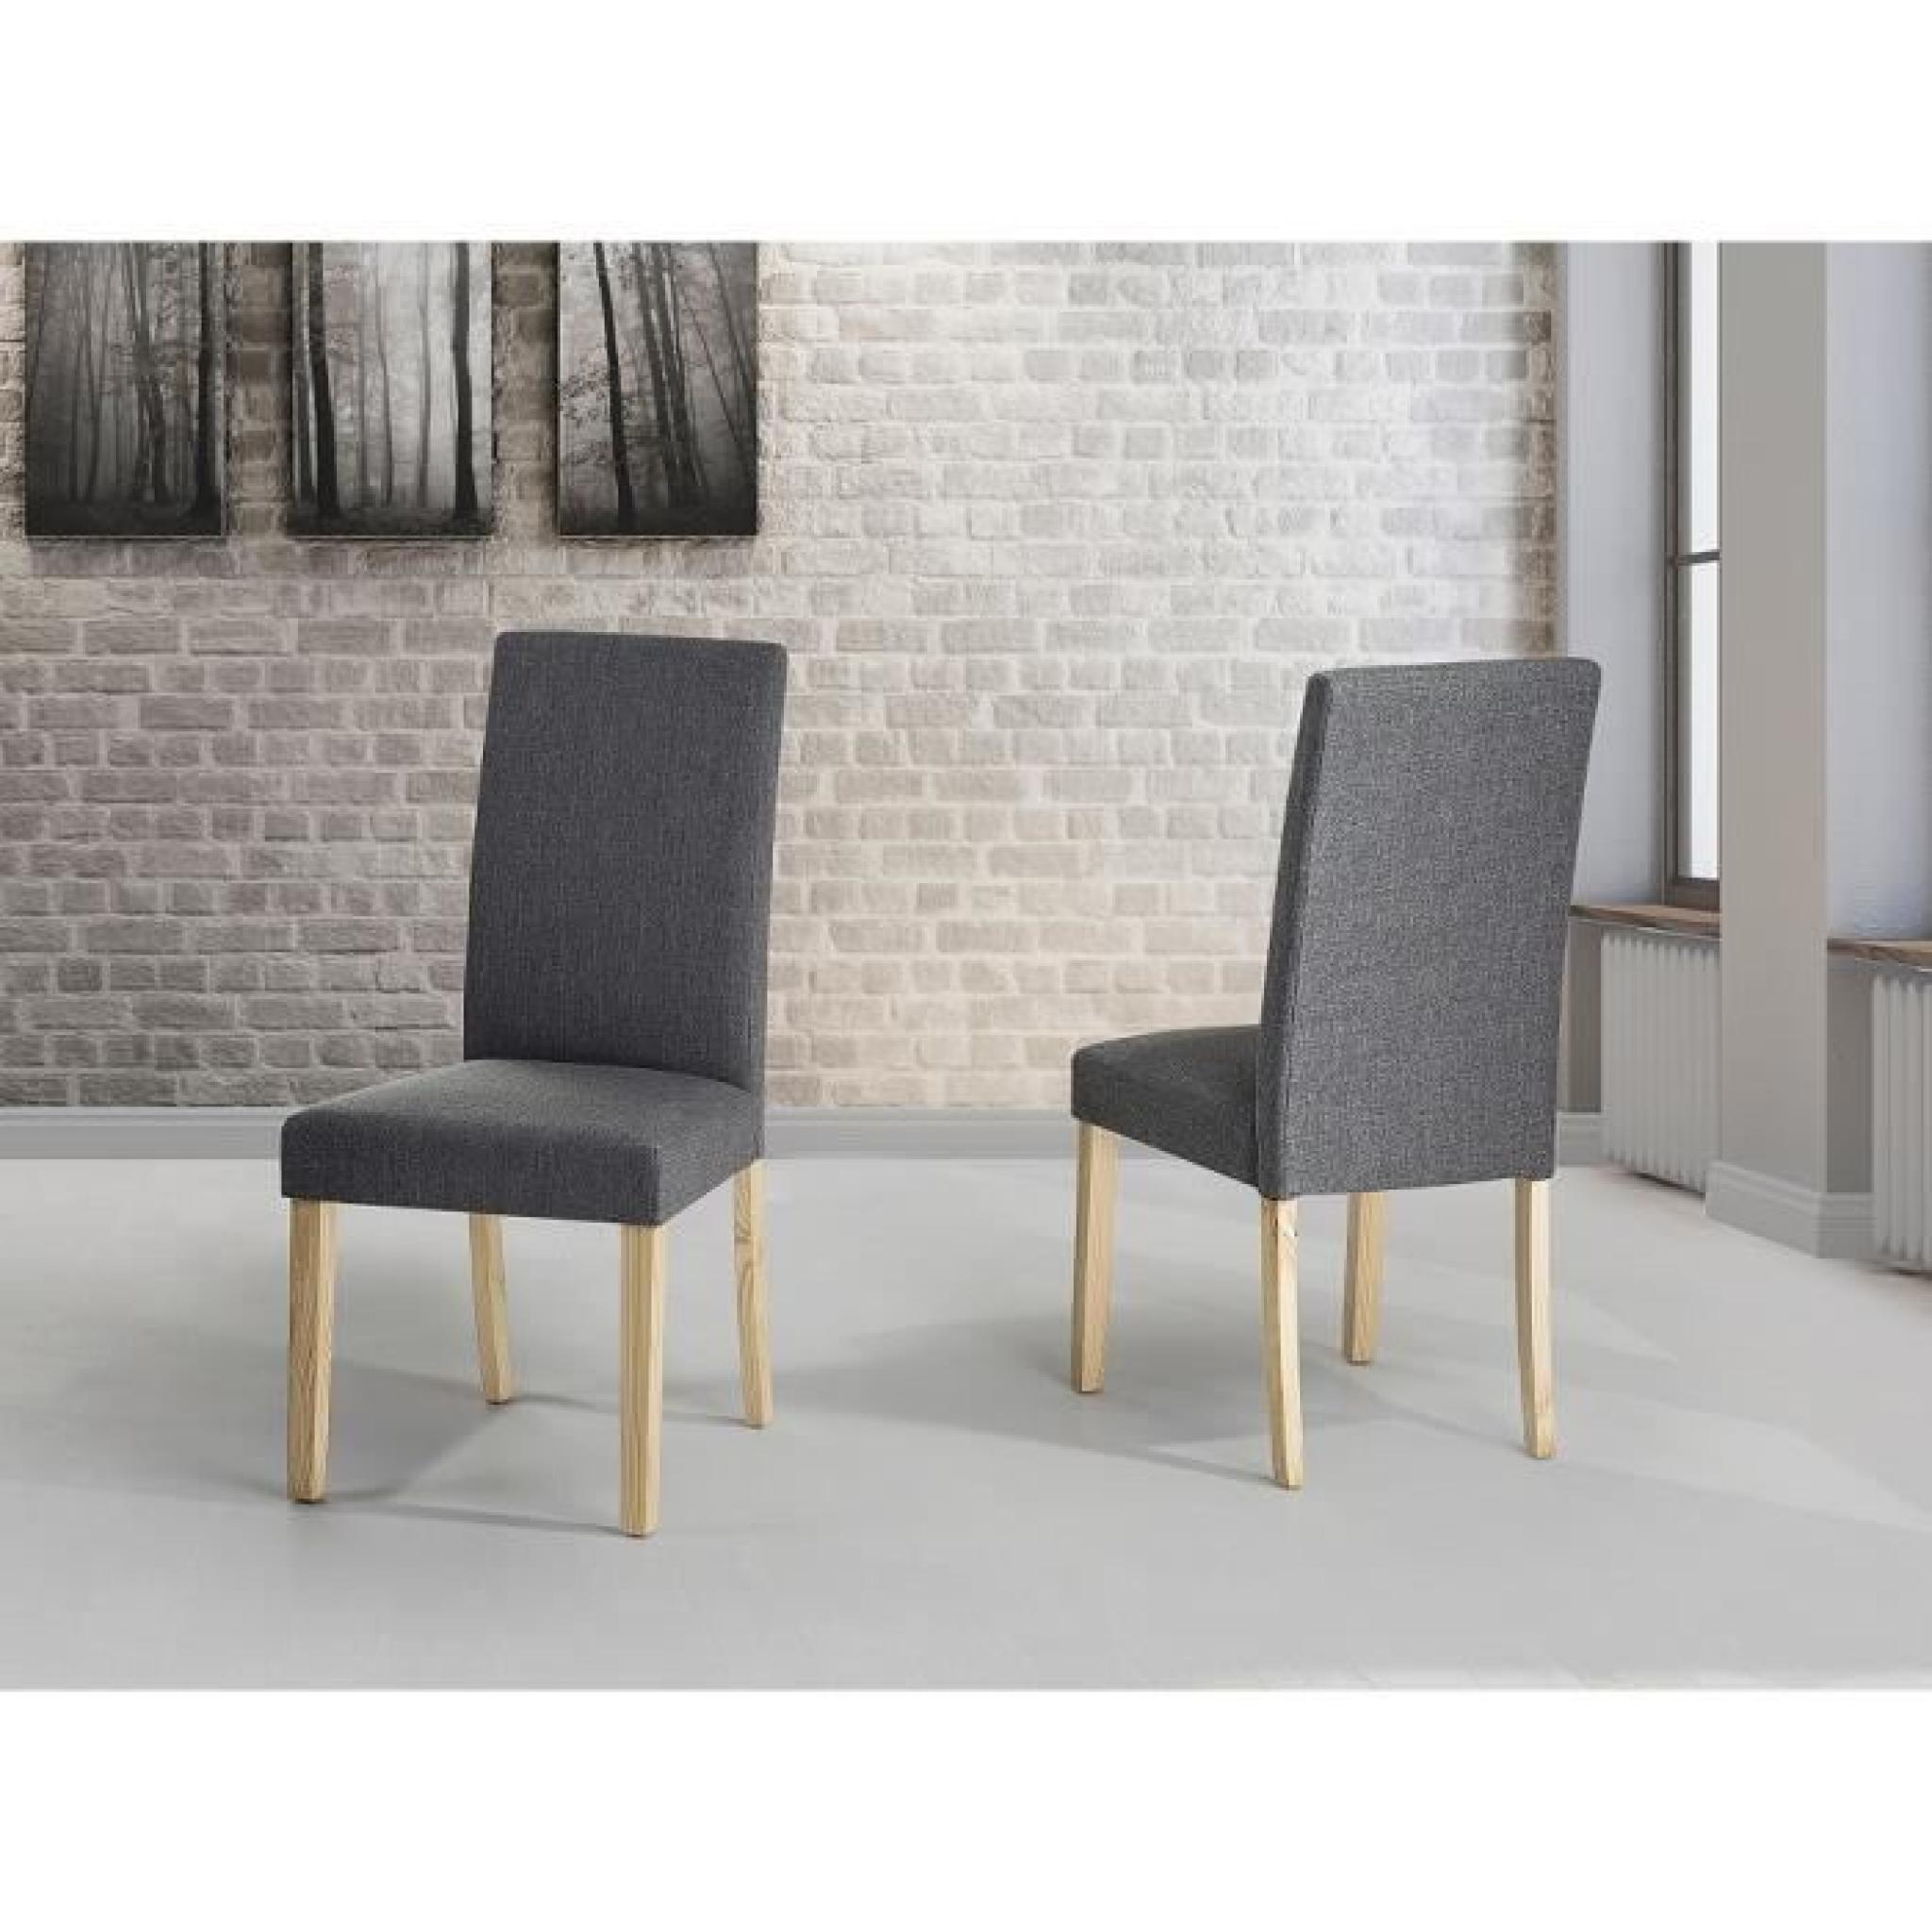 chaises de salle manger lot de 2 chaises en tissu gris broadway achat vente chaise. Black Bedroom Furniture Sets. Home Design Ideas